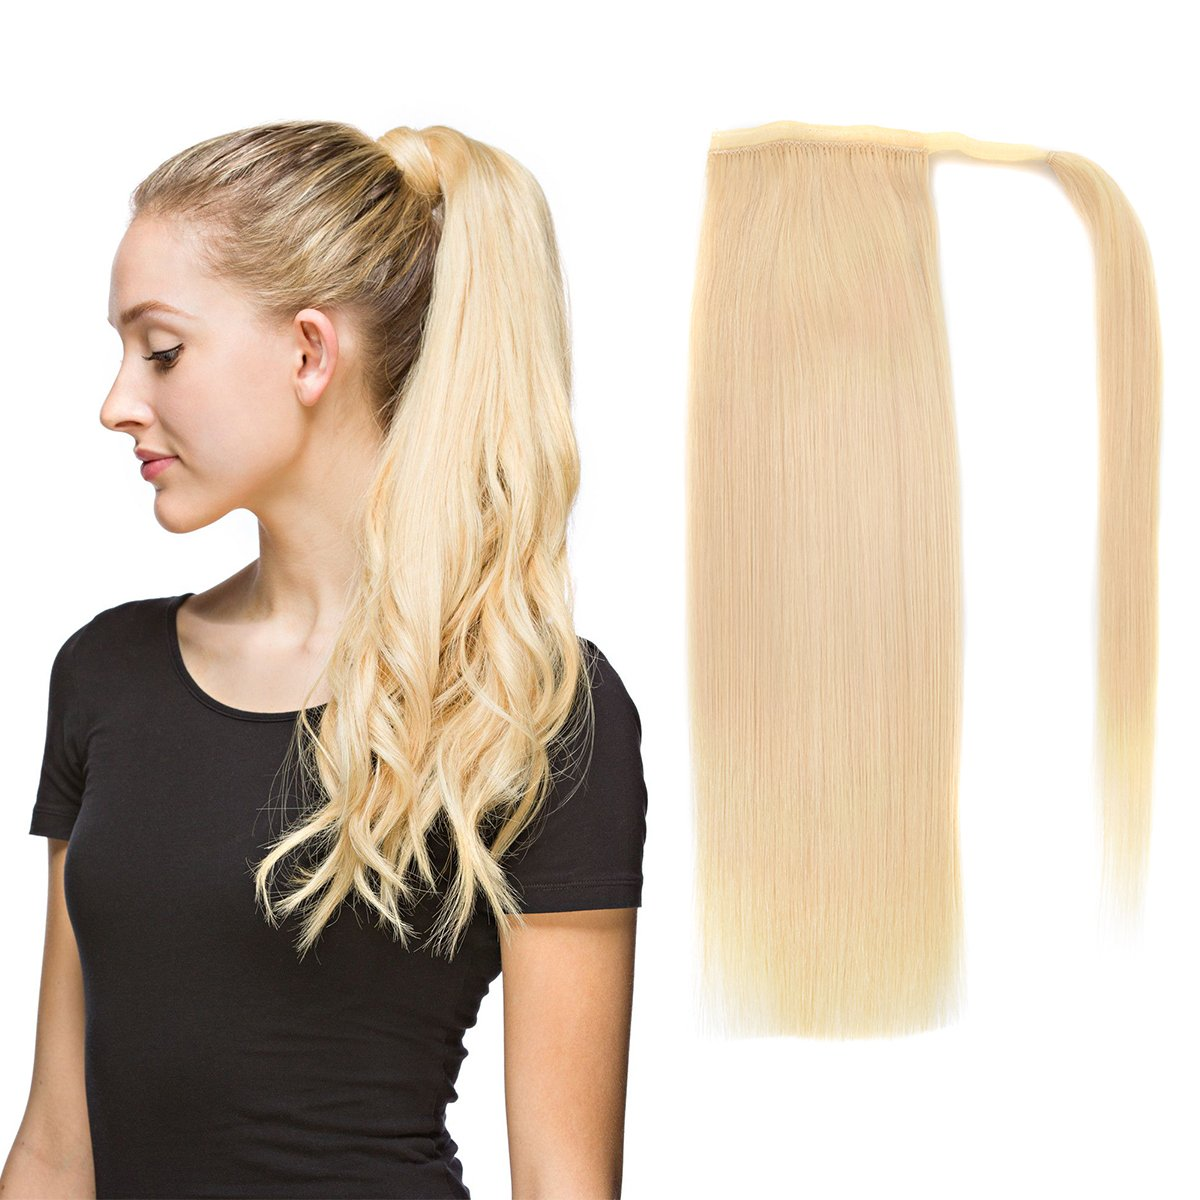 22'' Human Hair Ponytail Wrap Around Clip in Ponytail Hair Extensions for Women Bleach Blonde(#613) 100g/3.5oz by BHF